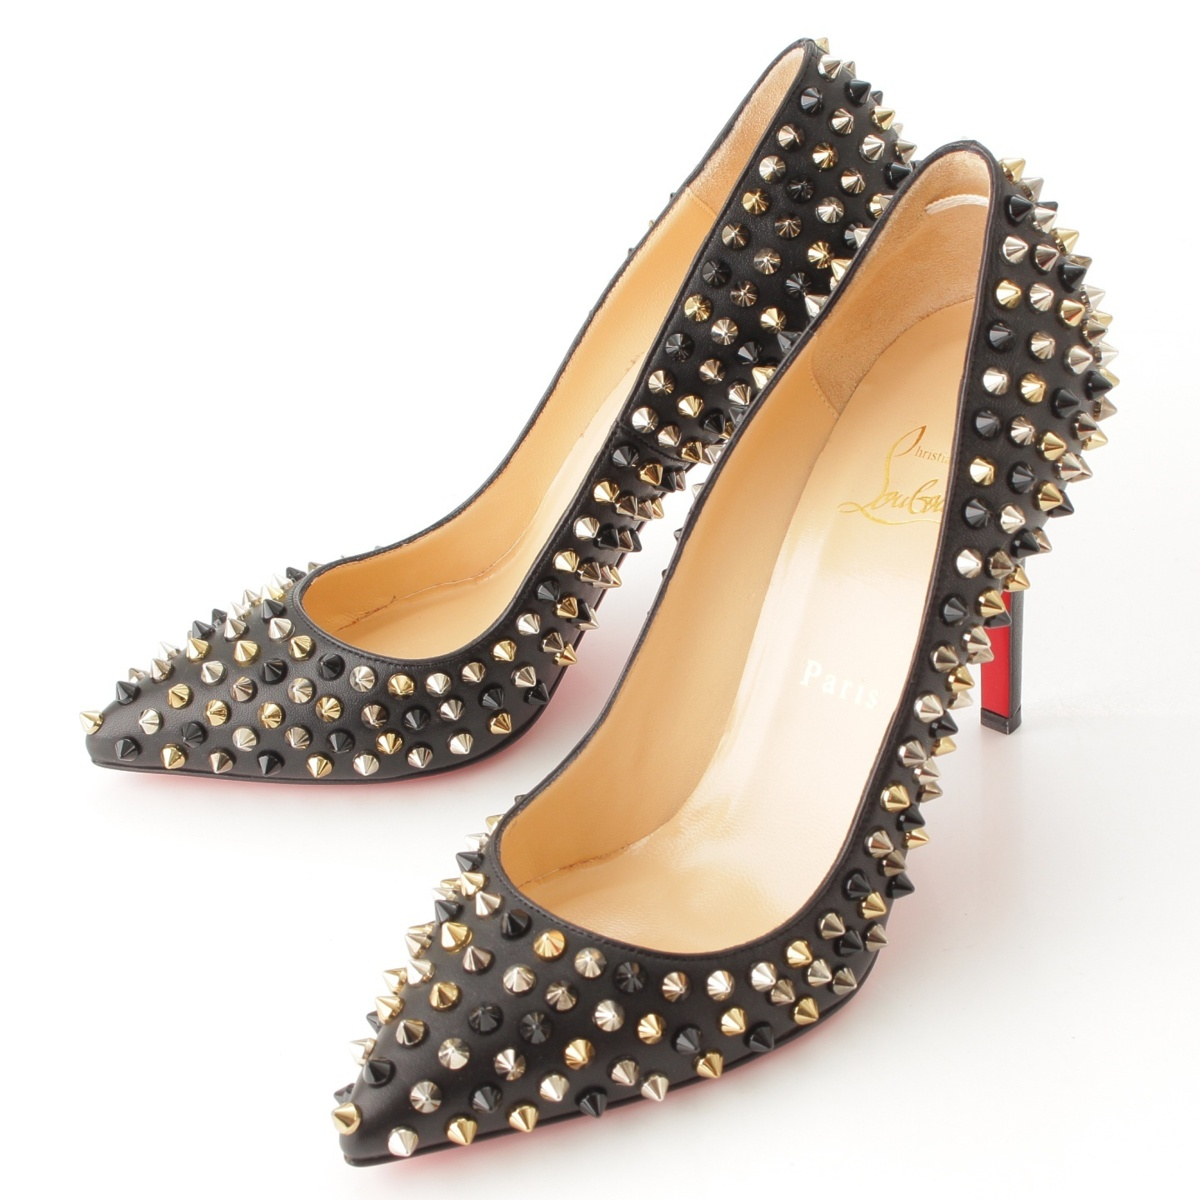 Christian Louboutin PIGALLE スパイク レザー ヒール パンプス ブラック 38 未使用63623【正規品】【送料無料】